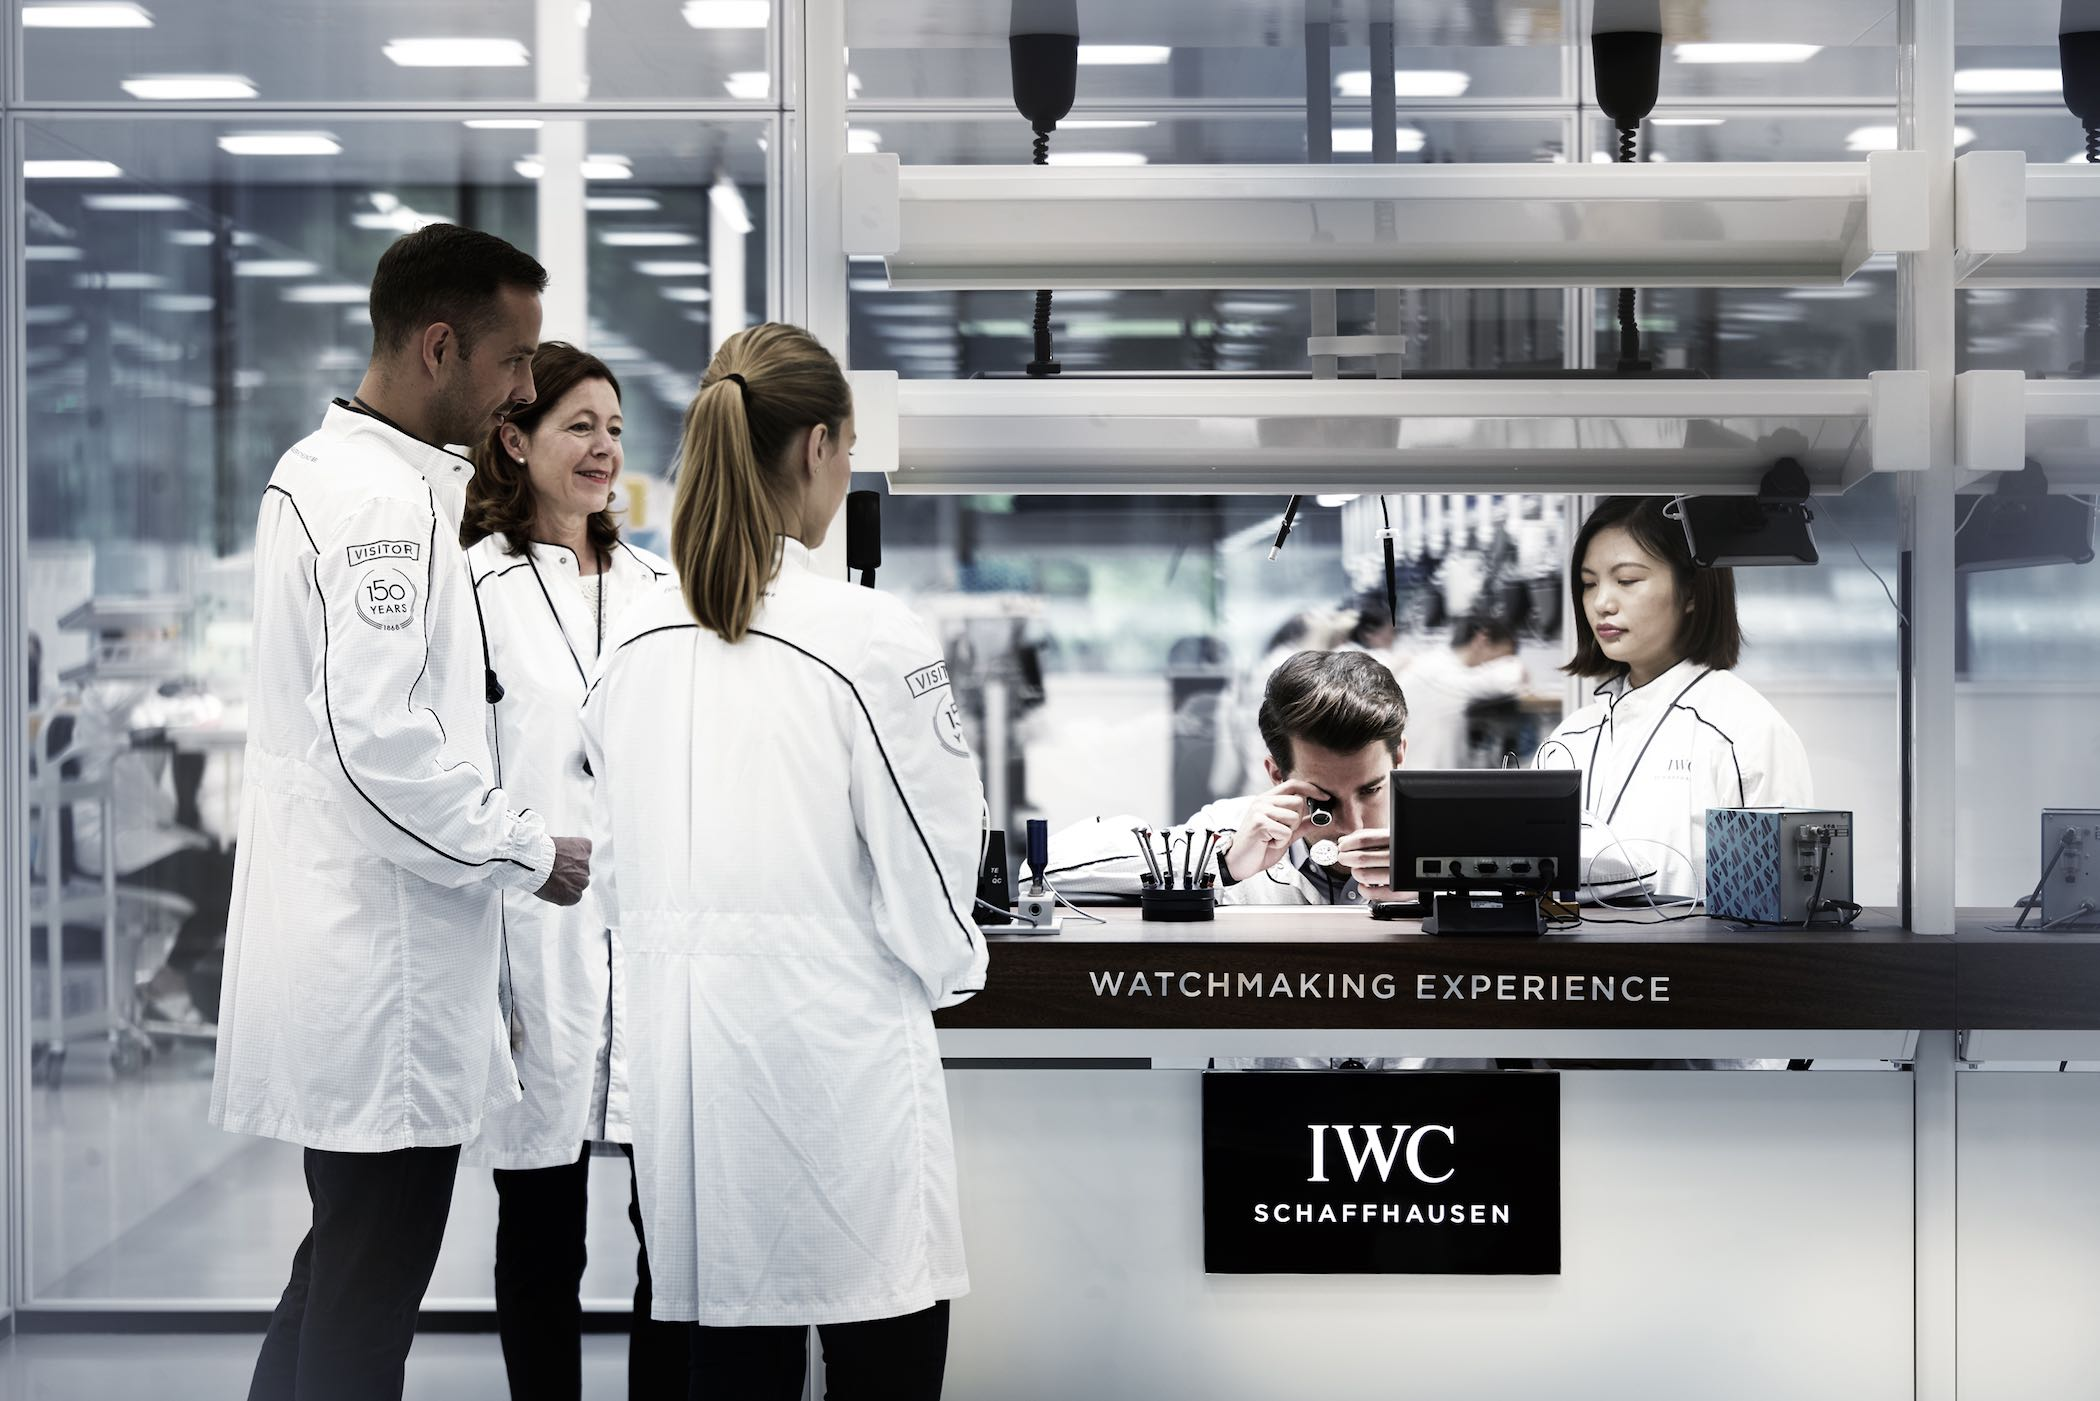 IWC New Manufacture, the Cutting-Edge ManufakturZentrum